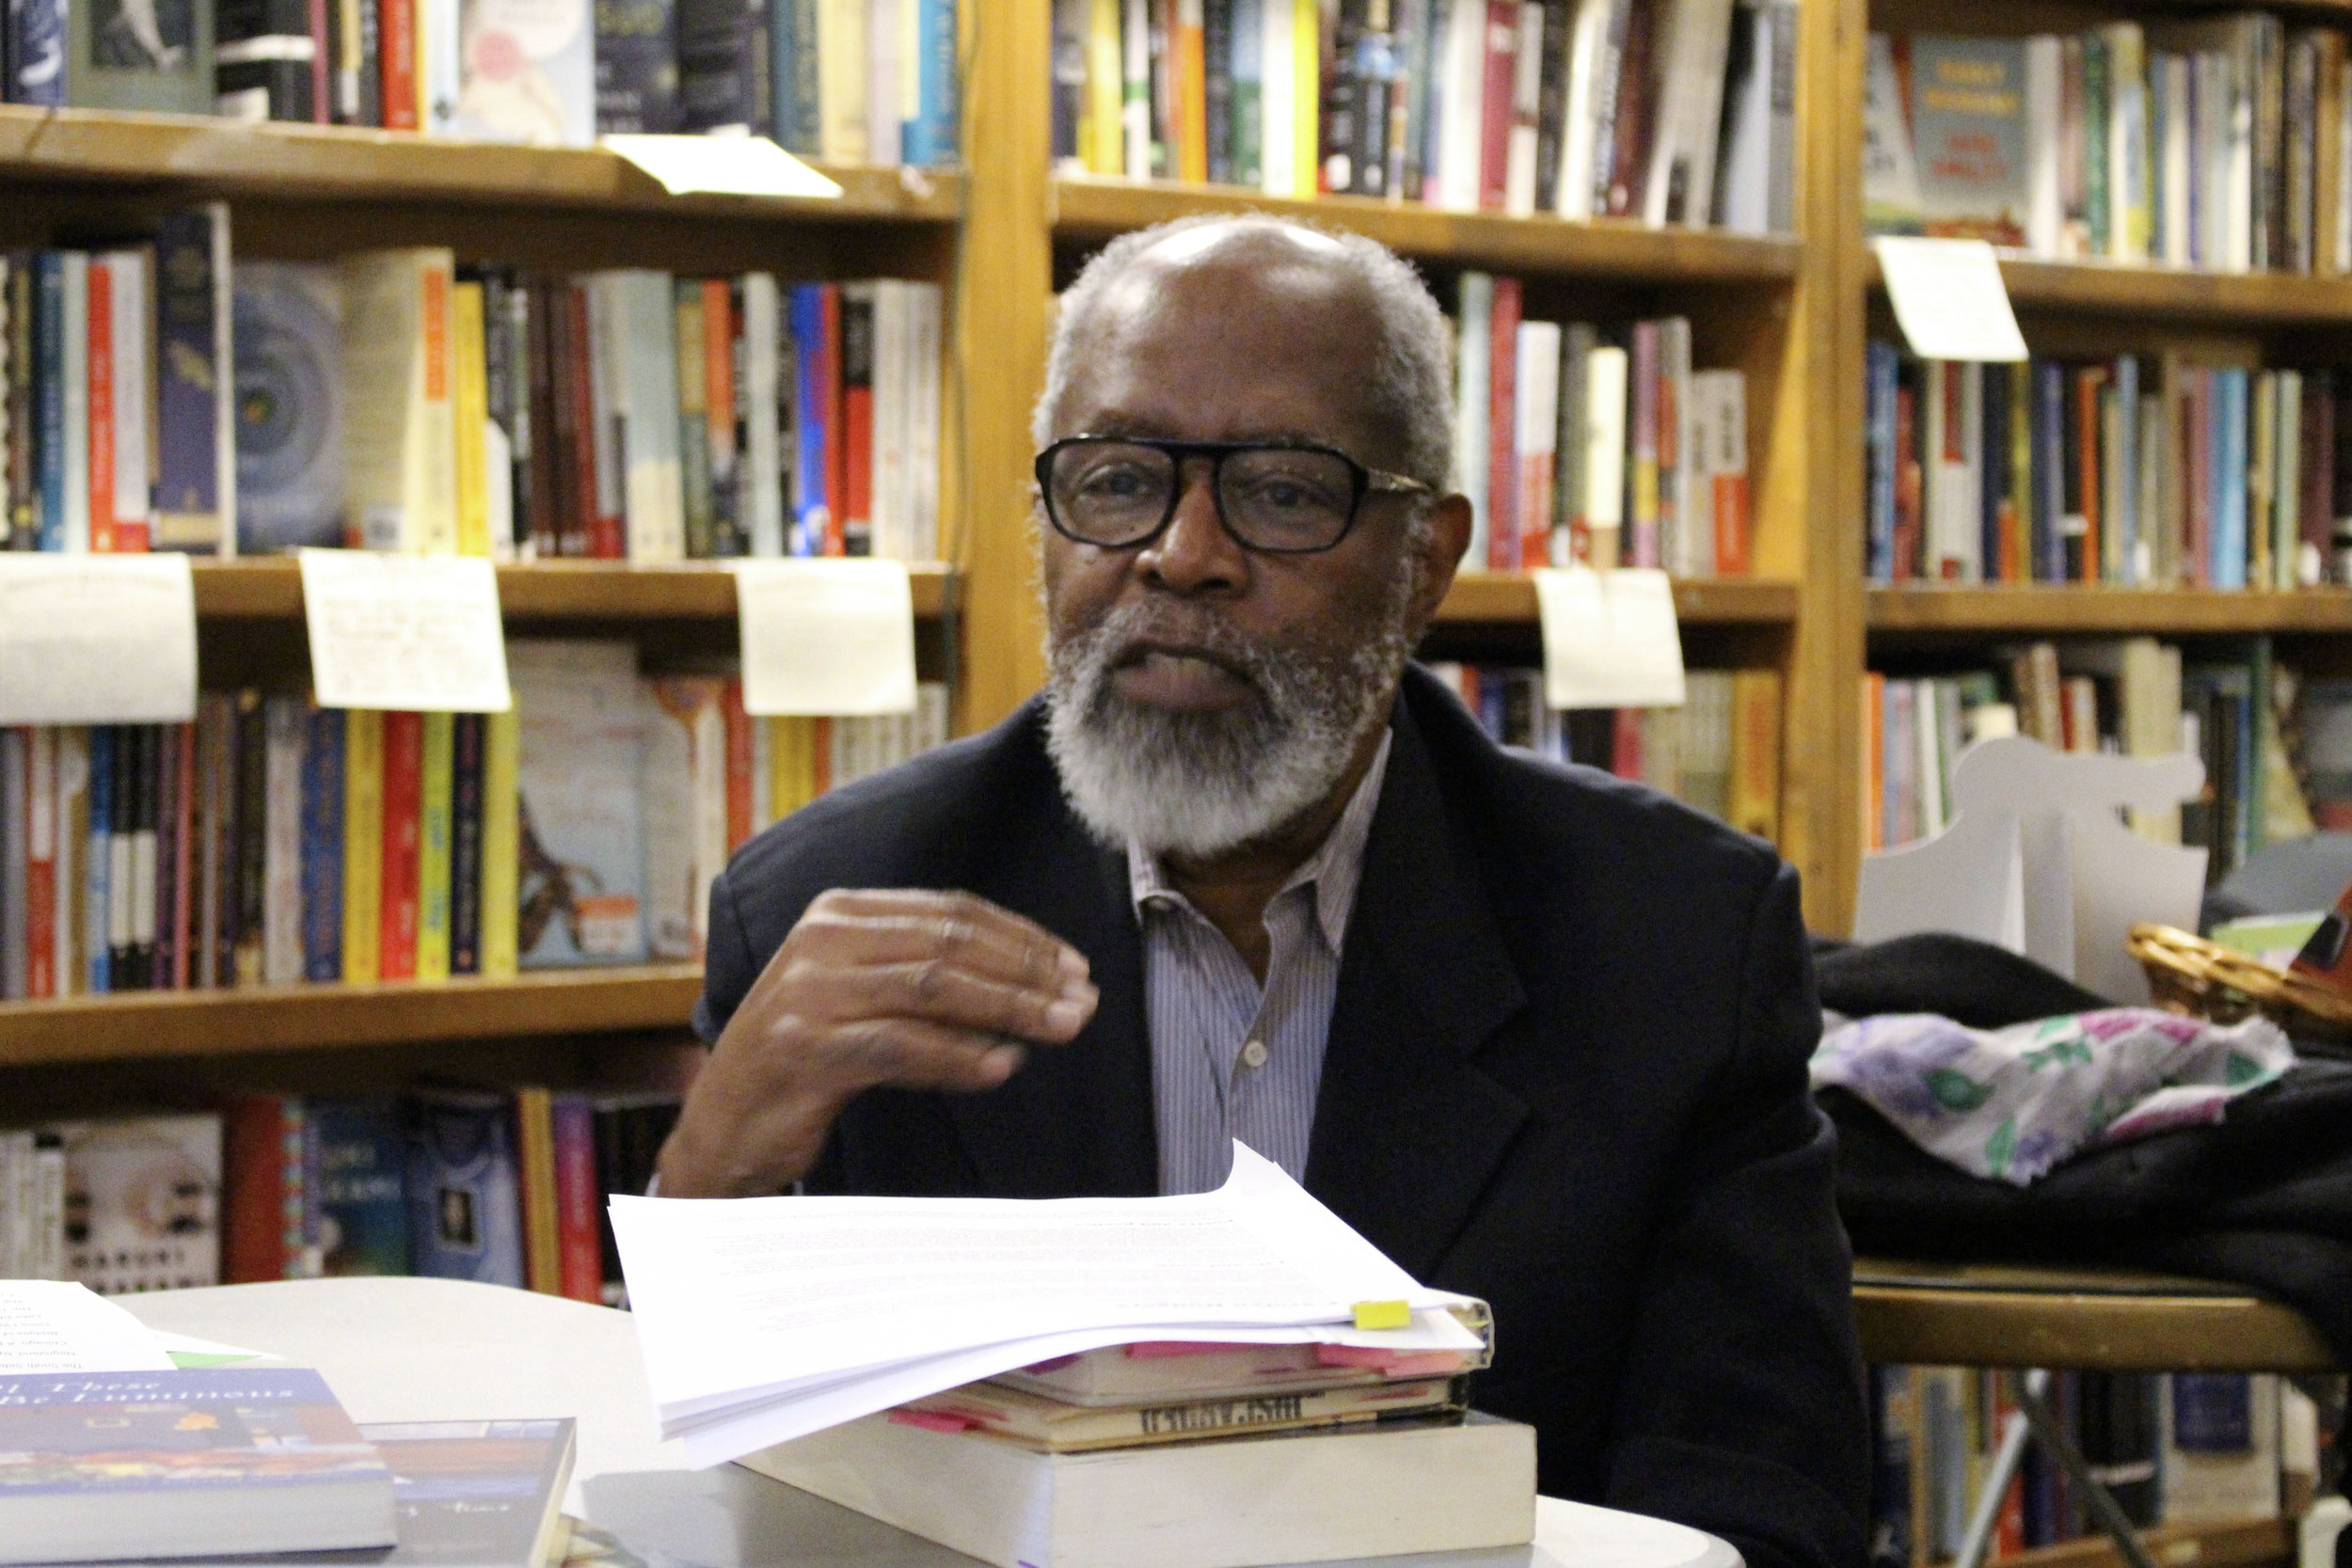 Poet Ed Roberson discusses the Chicago canon.